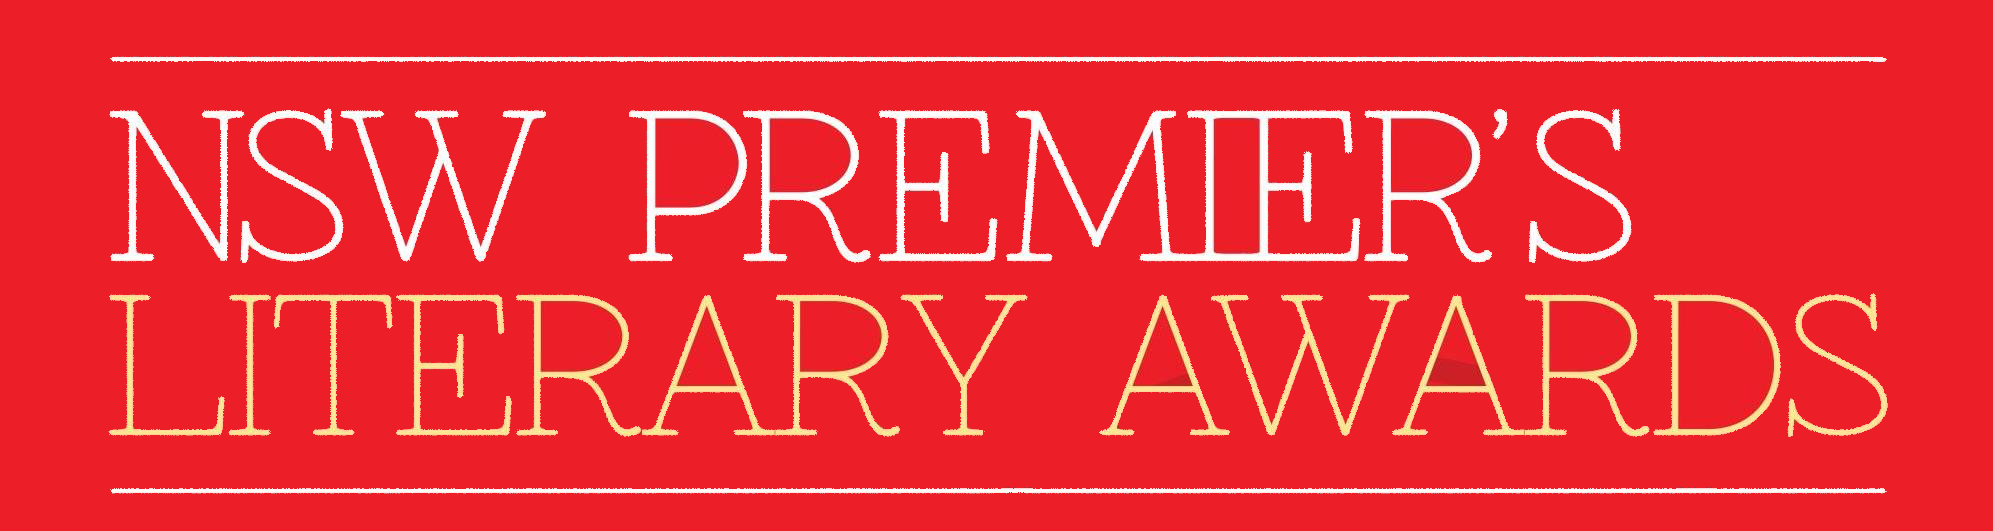 NSW Premier's Literary Awards